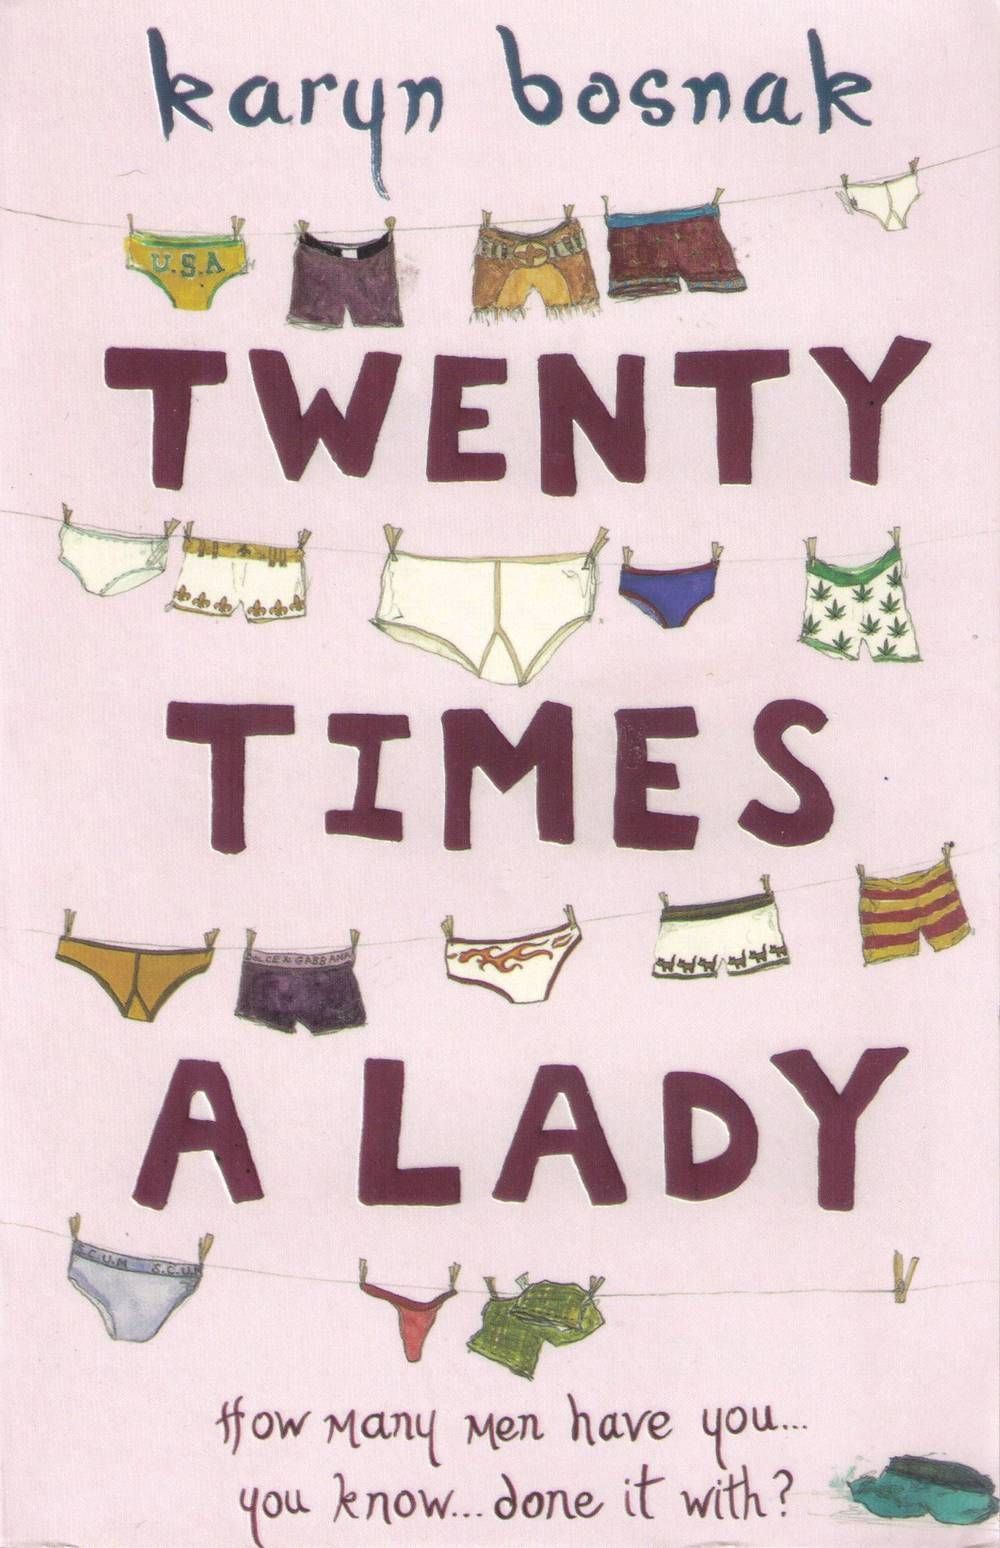 20 Times A Lady 20twentytimesaladyukfront 20 Times A Lady A Novel Karyn Bosnak On Amazon Free Shippin Chicago Sun Times What S Your Number Favorite Books